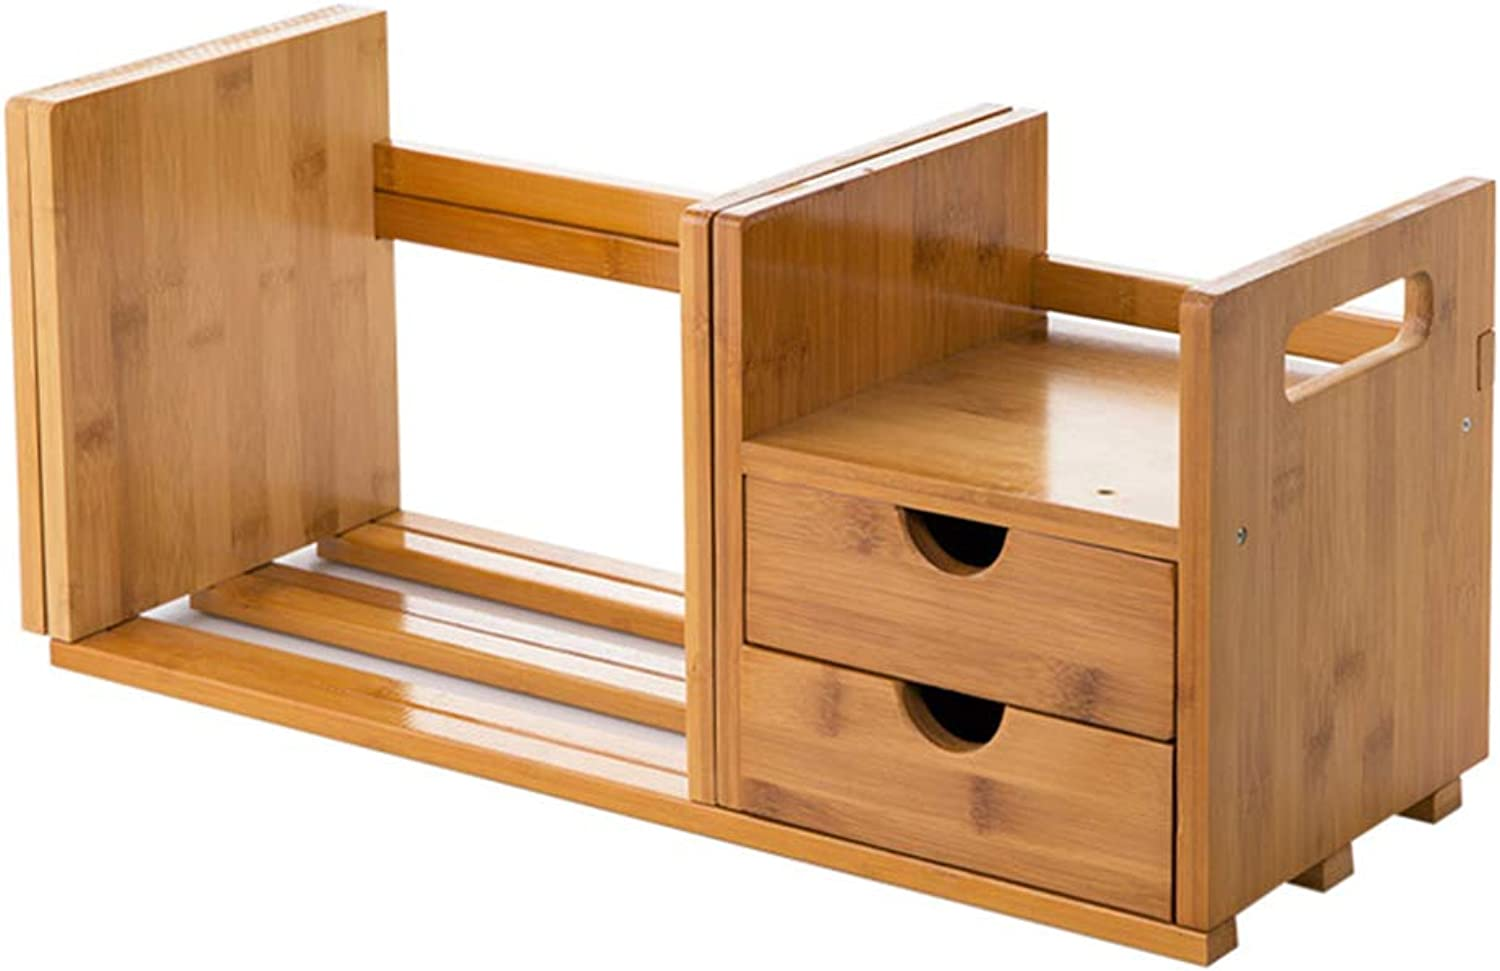 Natural Bamboo Desk Organiser Bookshelf with 2 Drawers Expandable and Adjustable,Suitable for Home Office School, Etc.